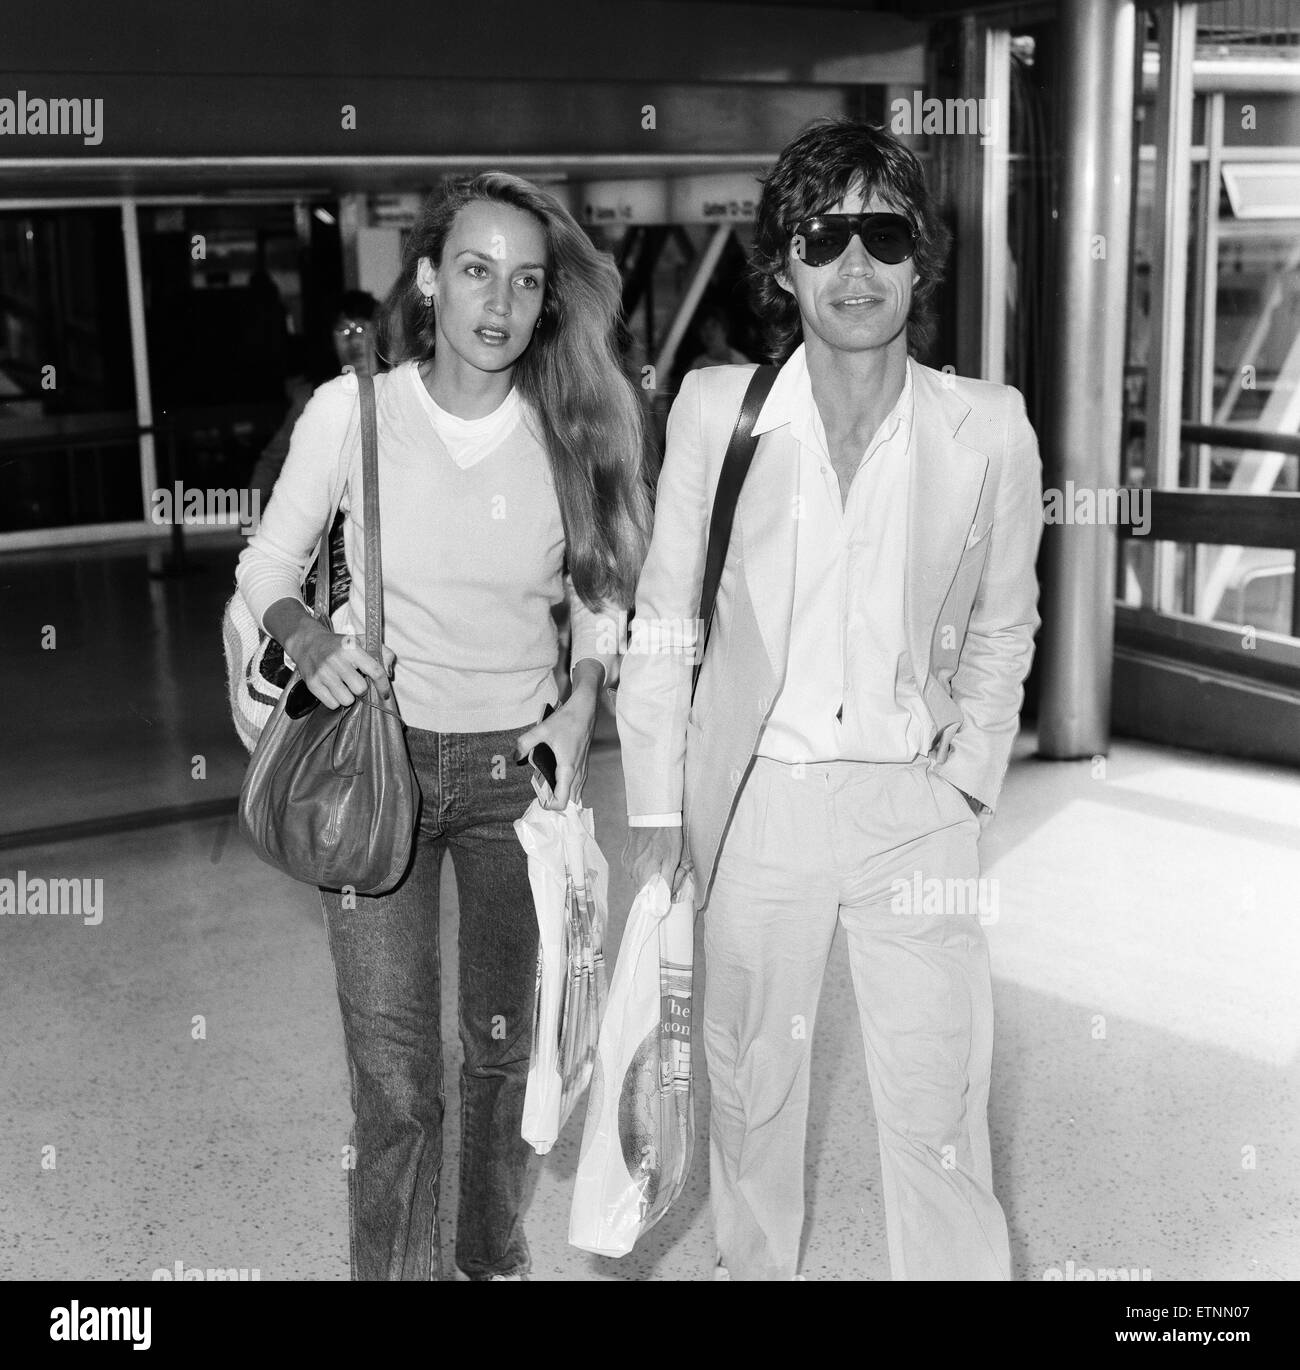 jerry hall and mick jagger relationship